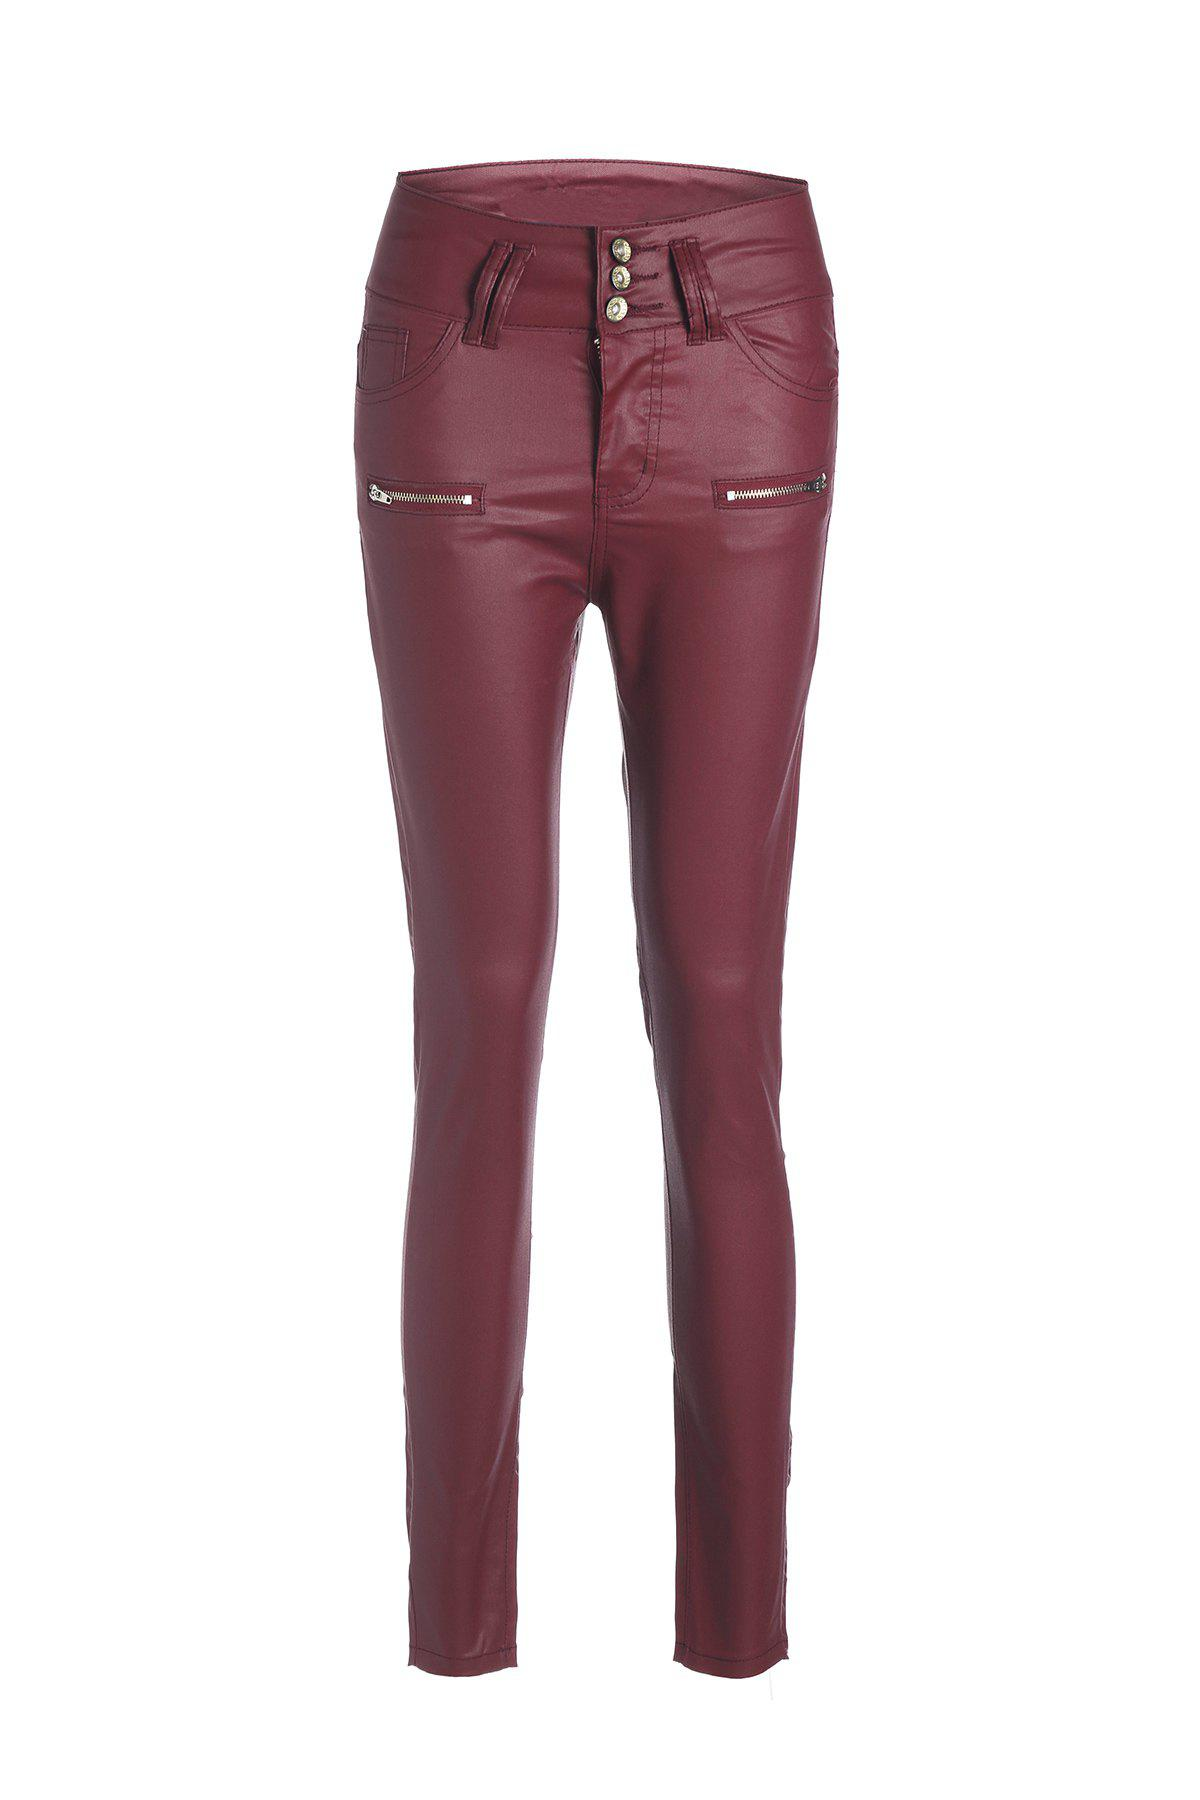 Stylish High Waist Button Design Slimming Women's PU Pants - WINE RED M